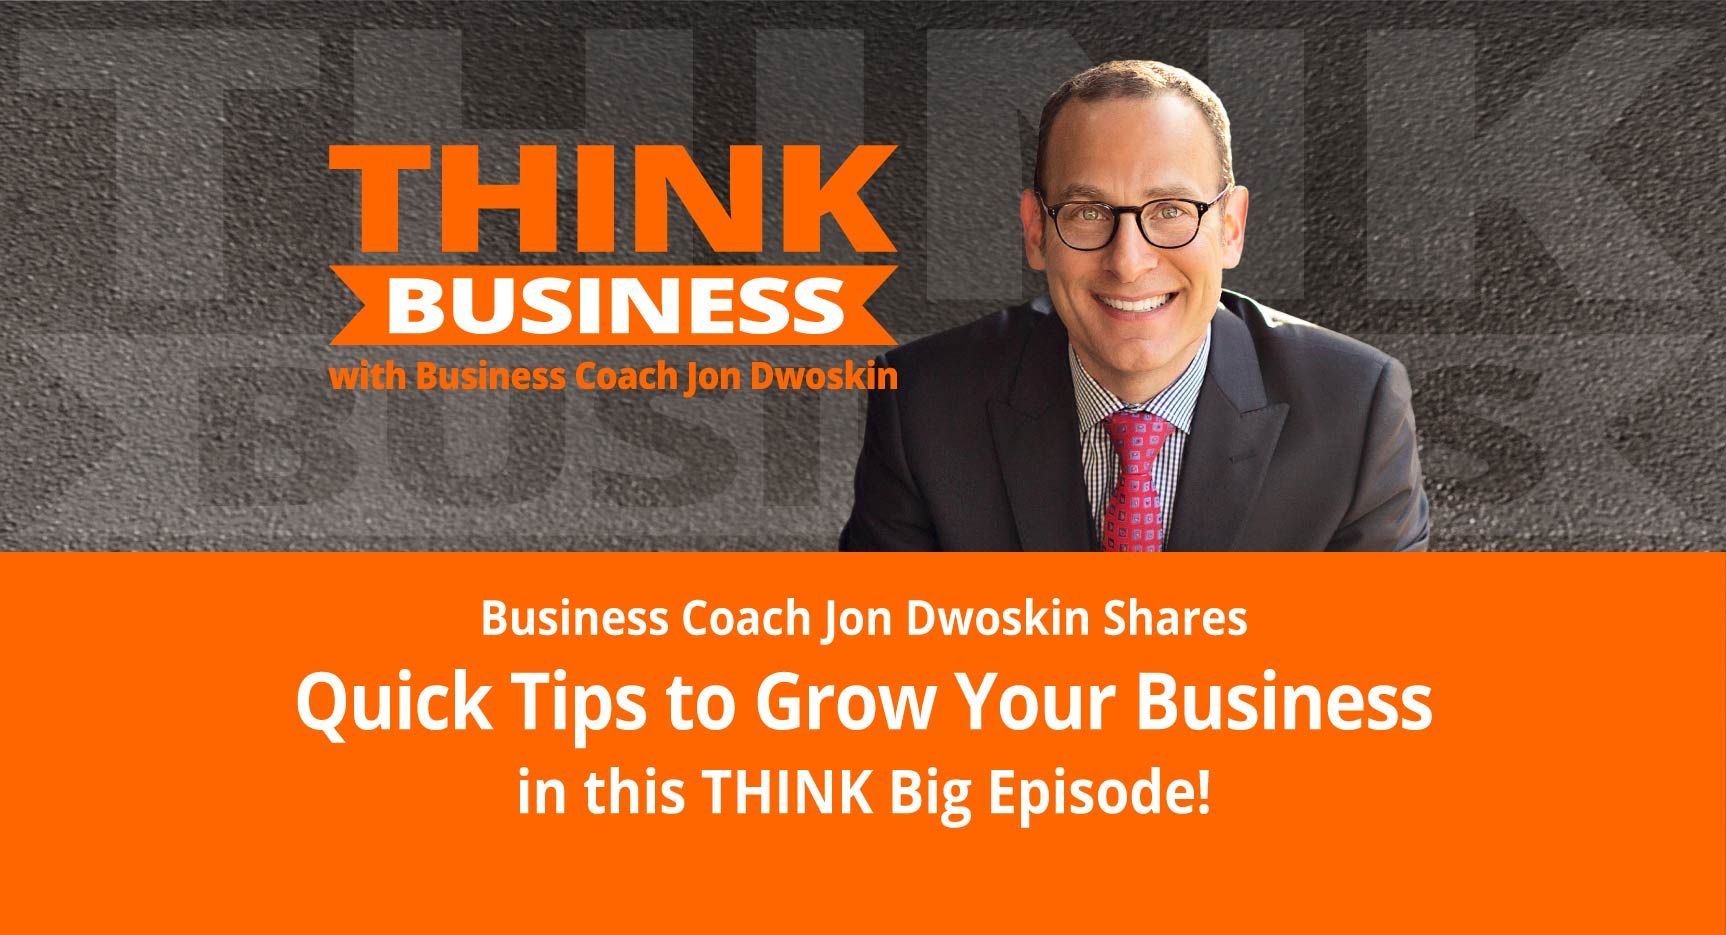 THINK Business Podcast: Understand Your Unique Ability